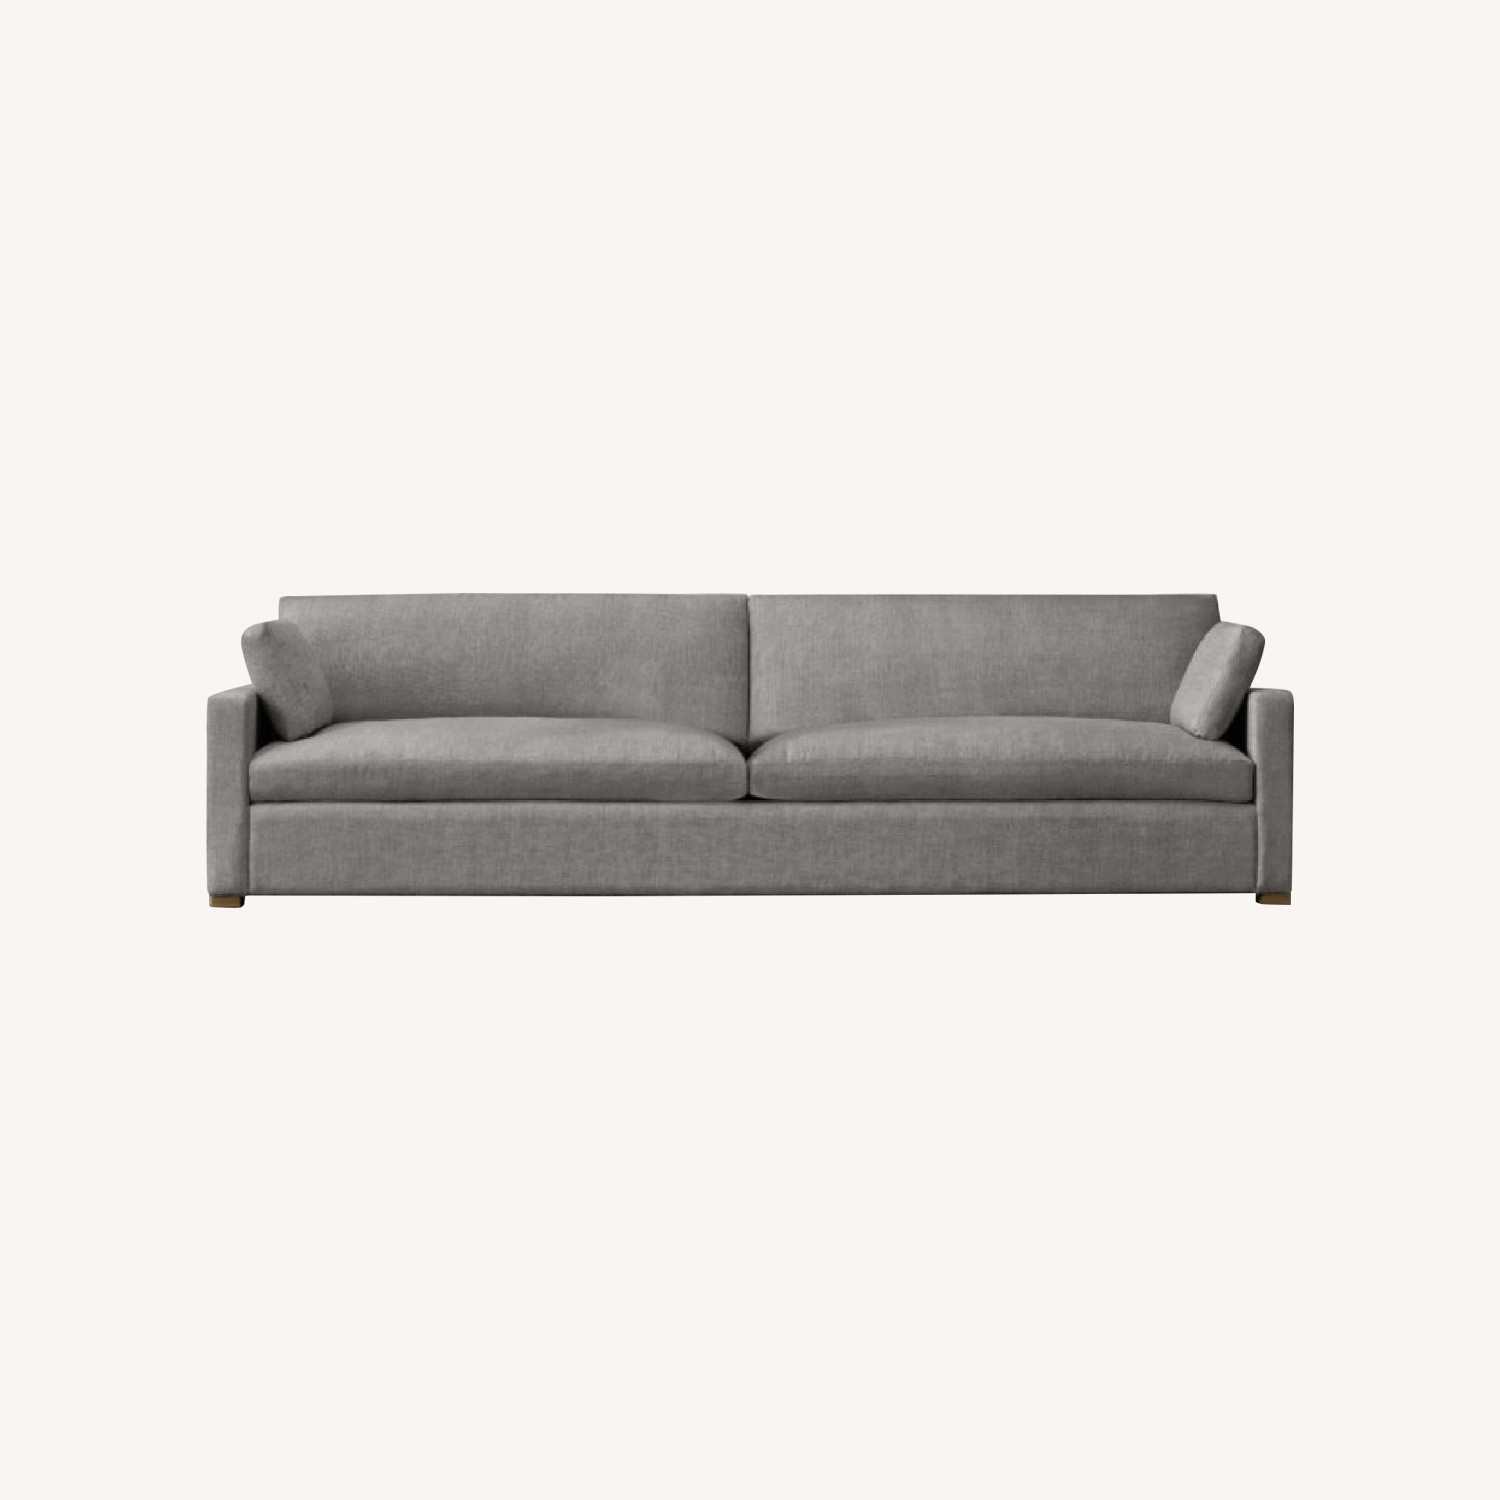 Restoration Hardware Belgian Sofa